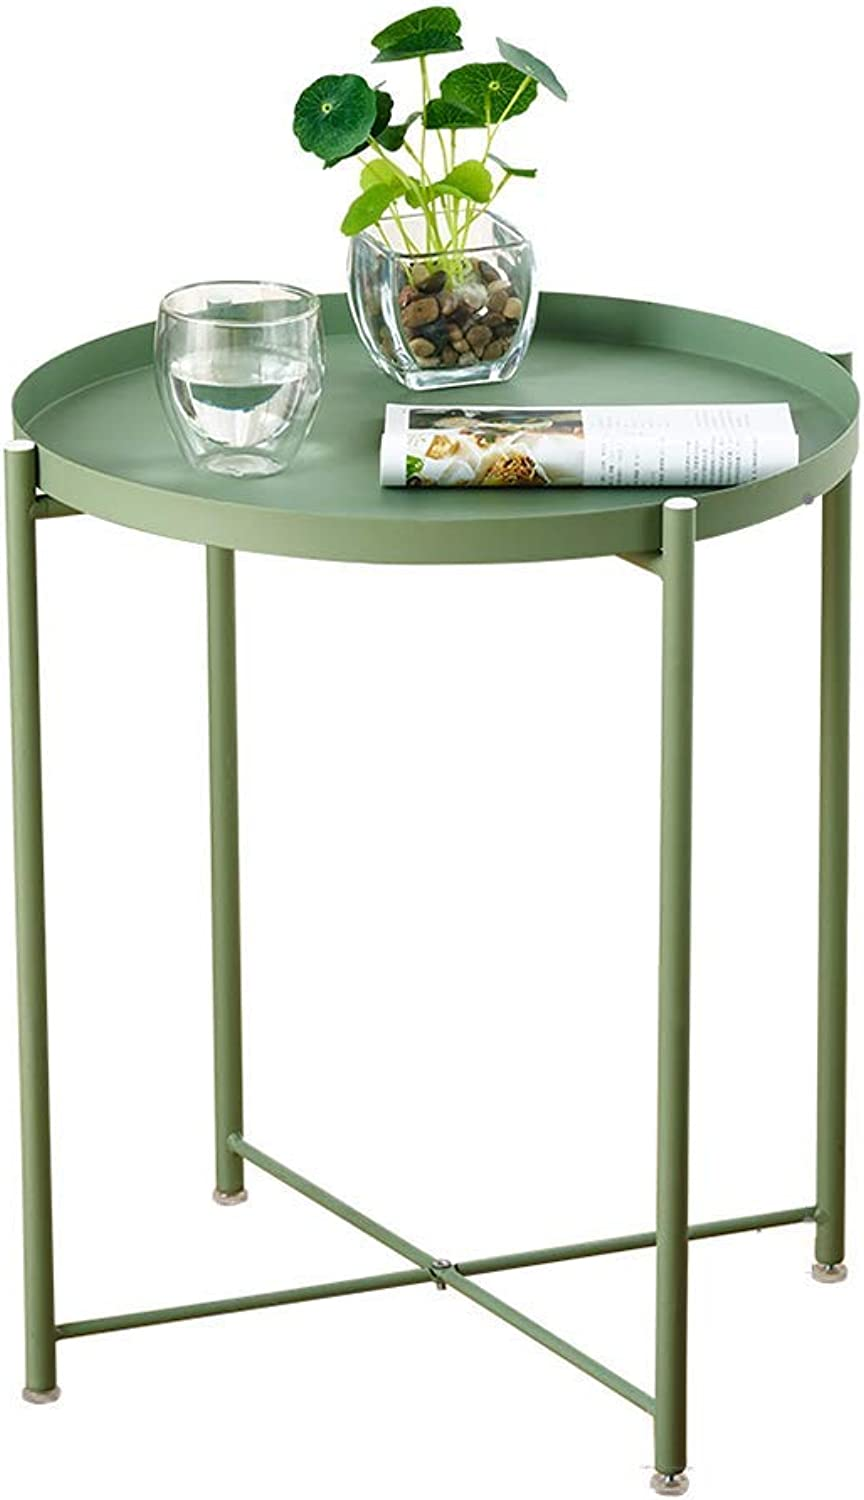 Round Iron Sofa Table,Side Table,Coffee Table,Snack Table for Living Room, Bedroom, Balcony